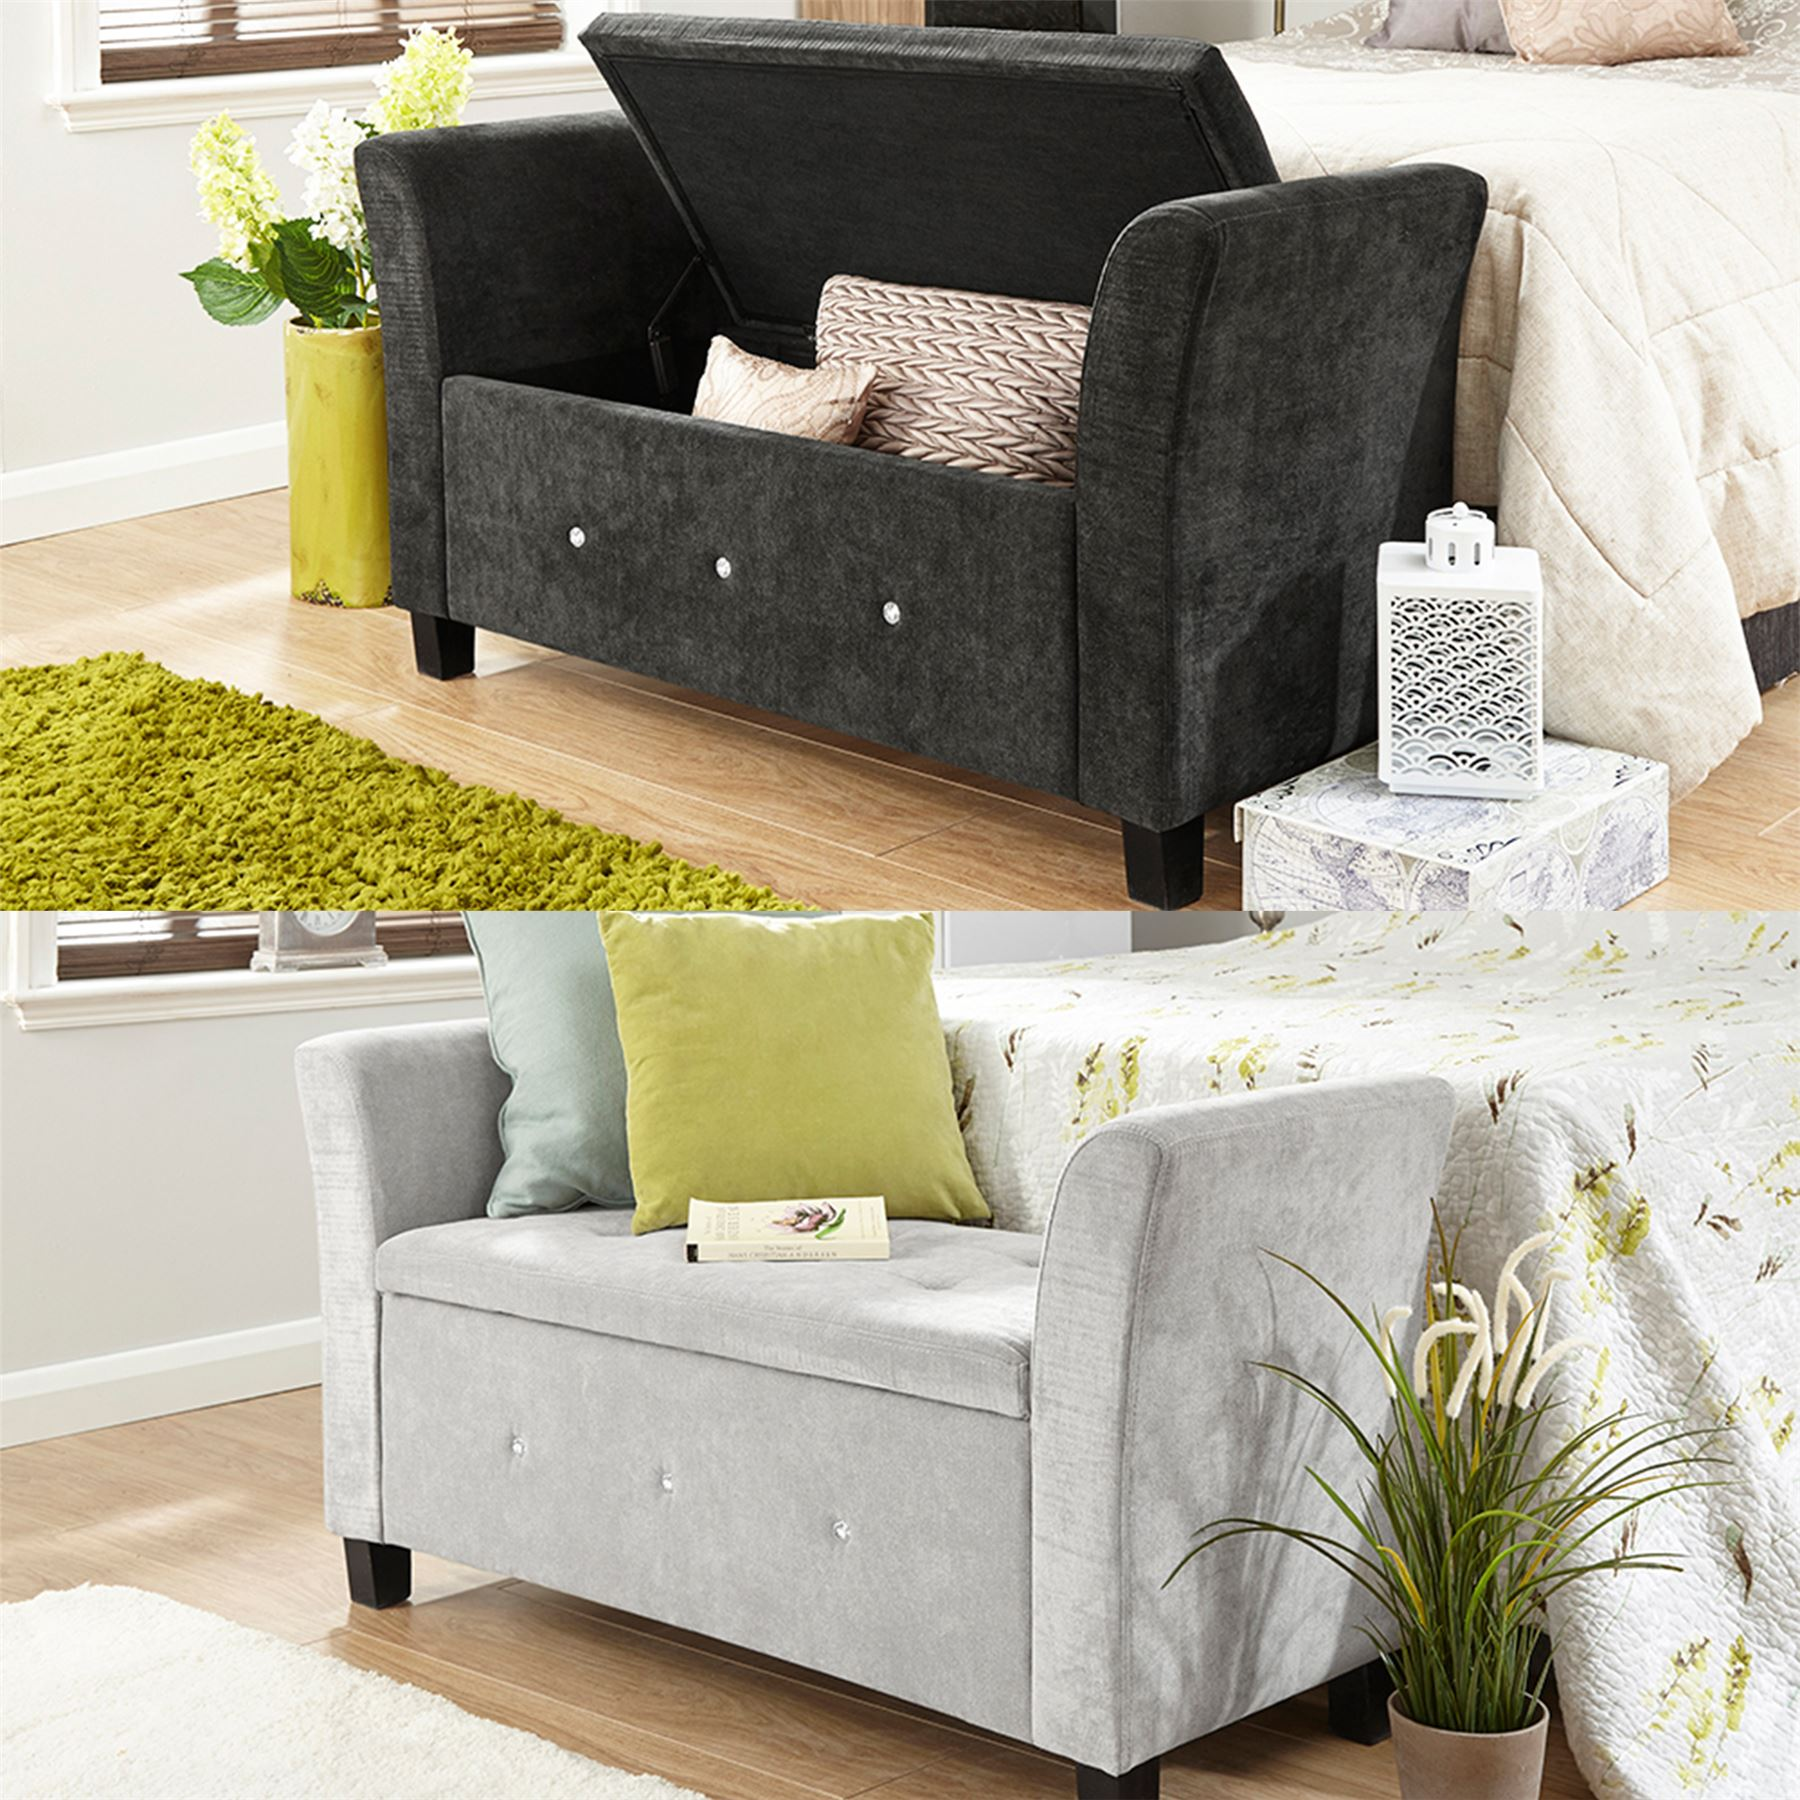 Furniture Living Room Seating Ottomans Storage